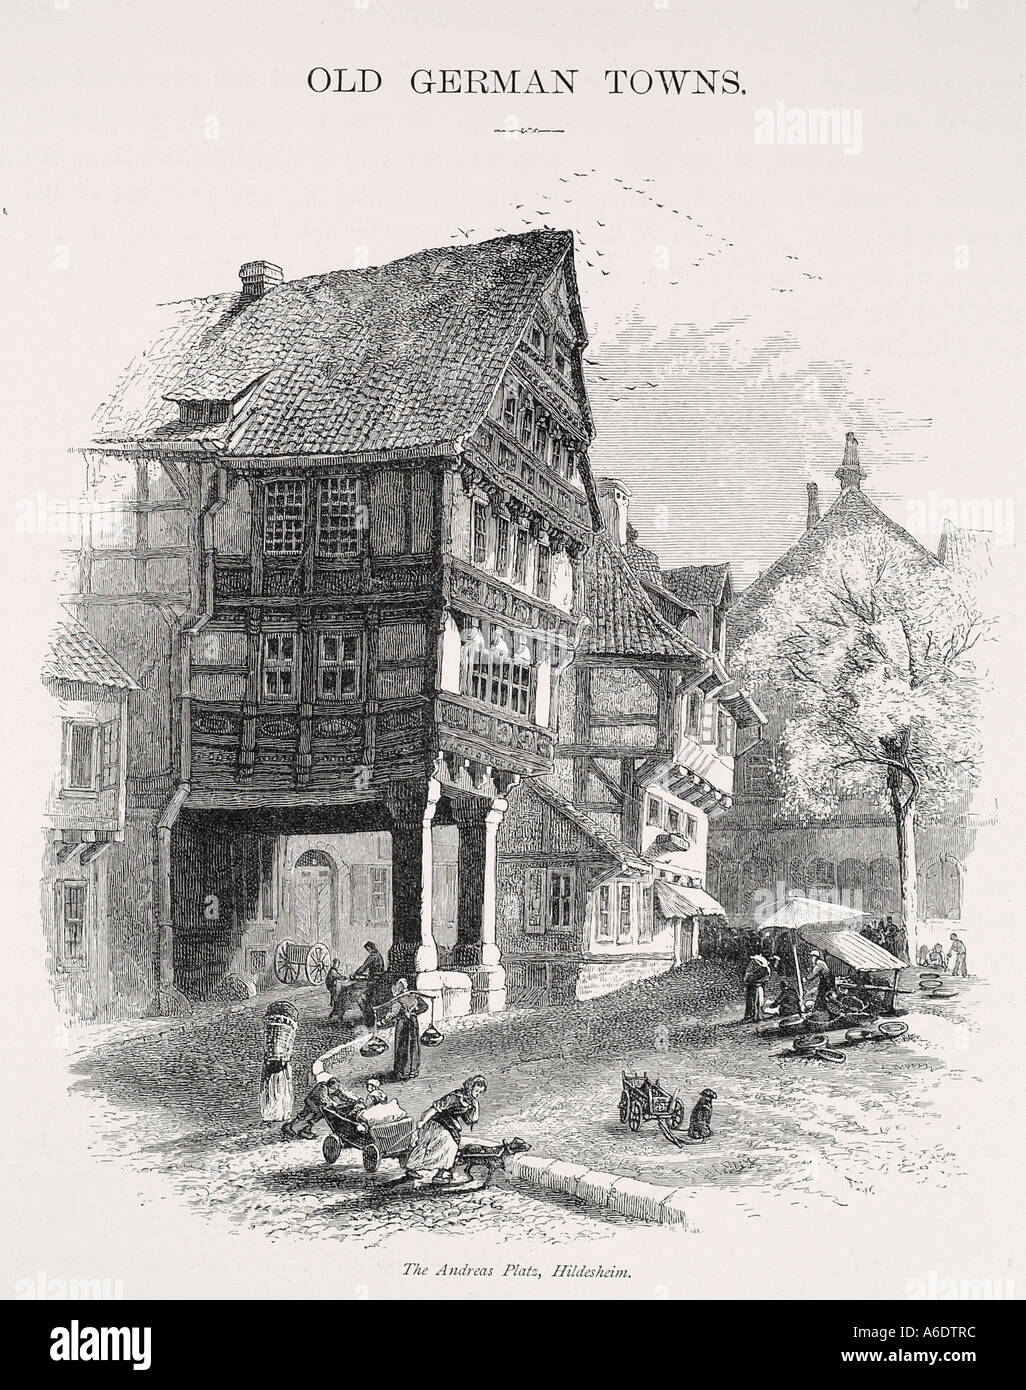 Hildesheim Germany Lower Saxony Geography Travel medieval half timber square Europe dwelling house street road - Stock Image